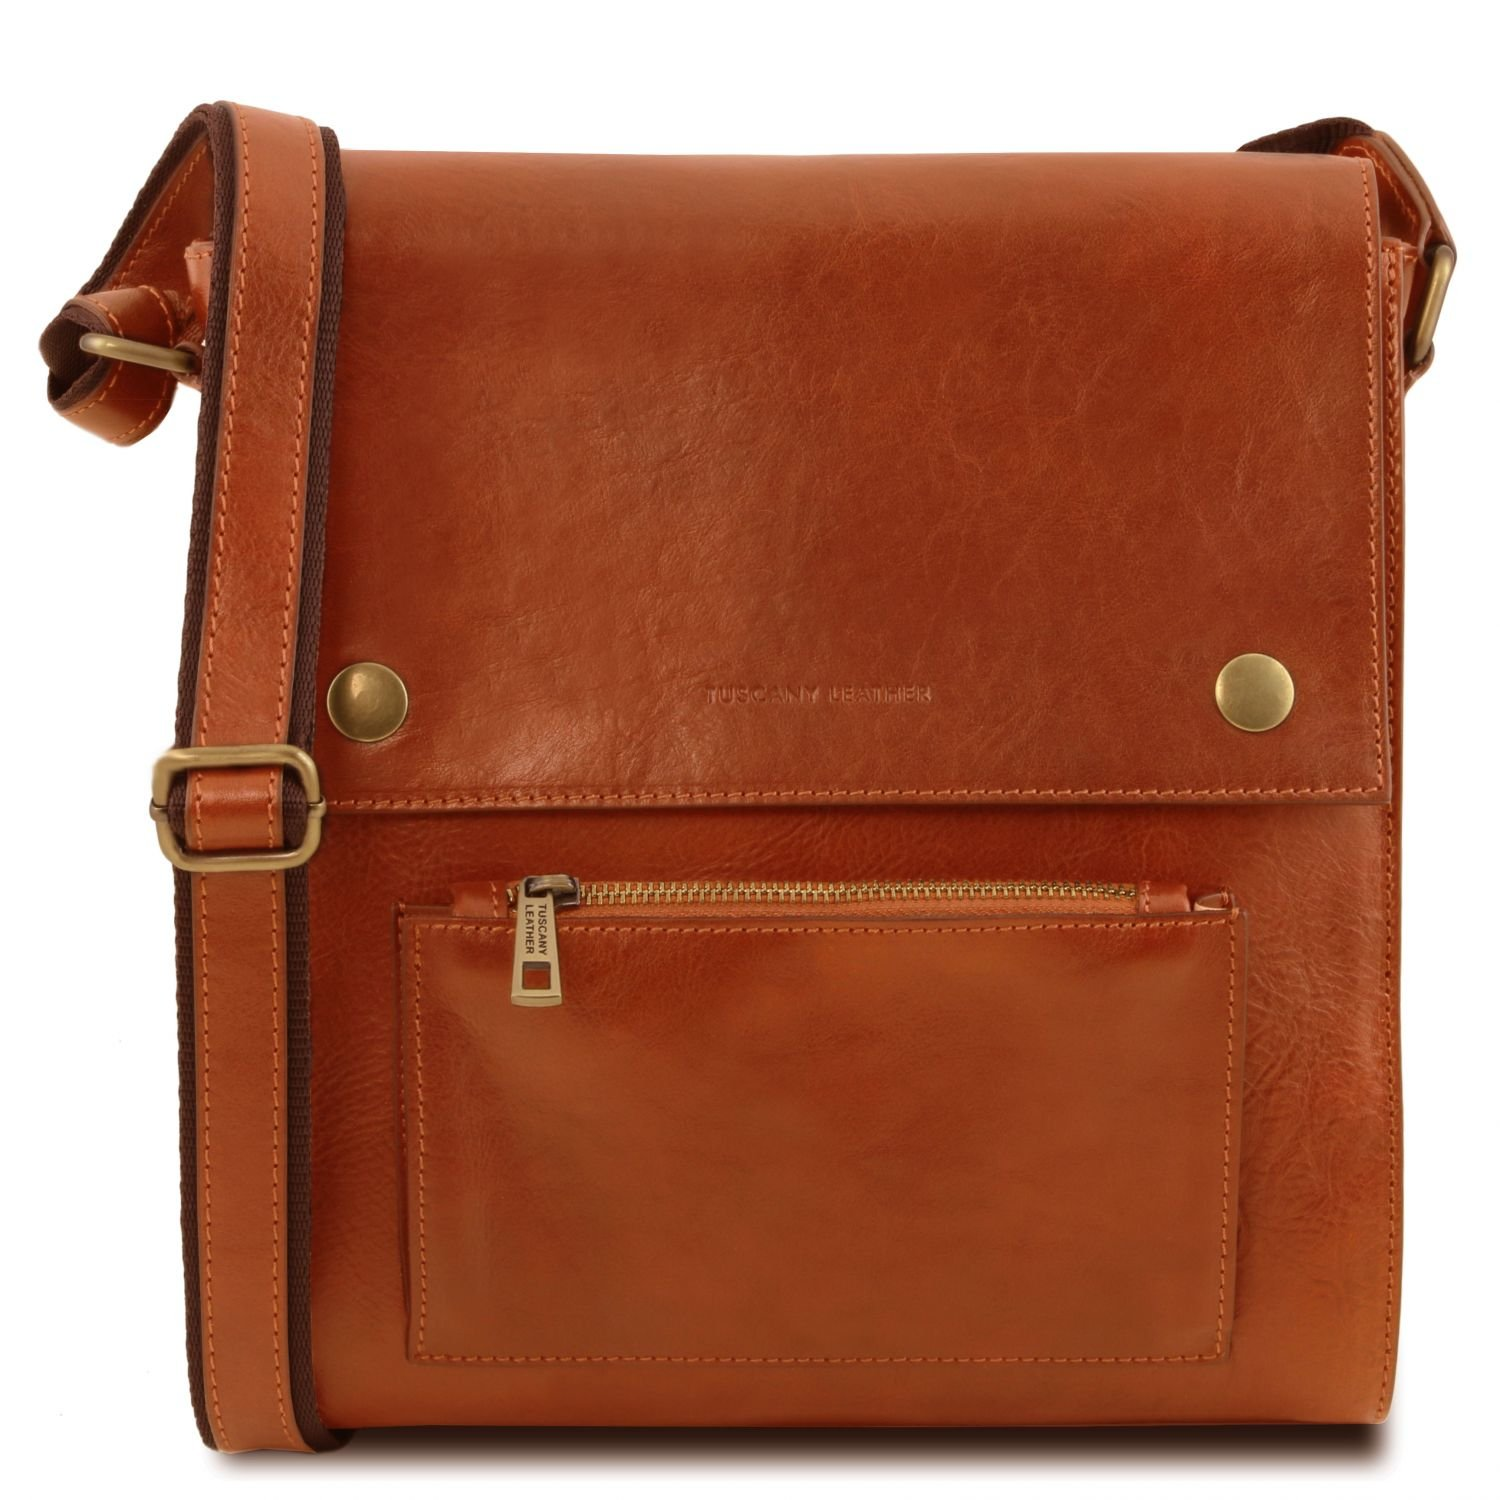 Tuscany Leather Oliver Leather crossbody bag for men with front pocket Honey